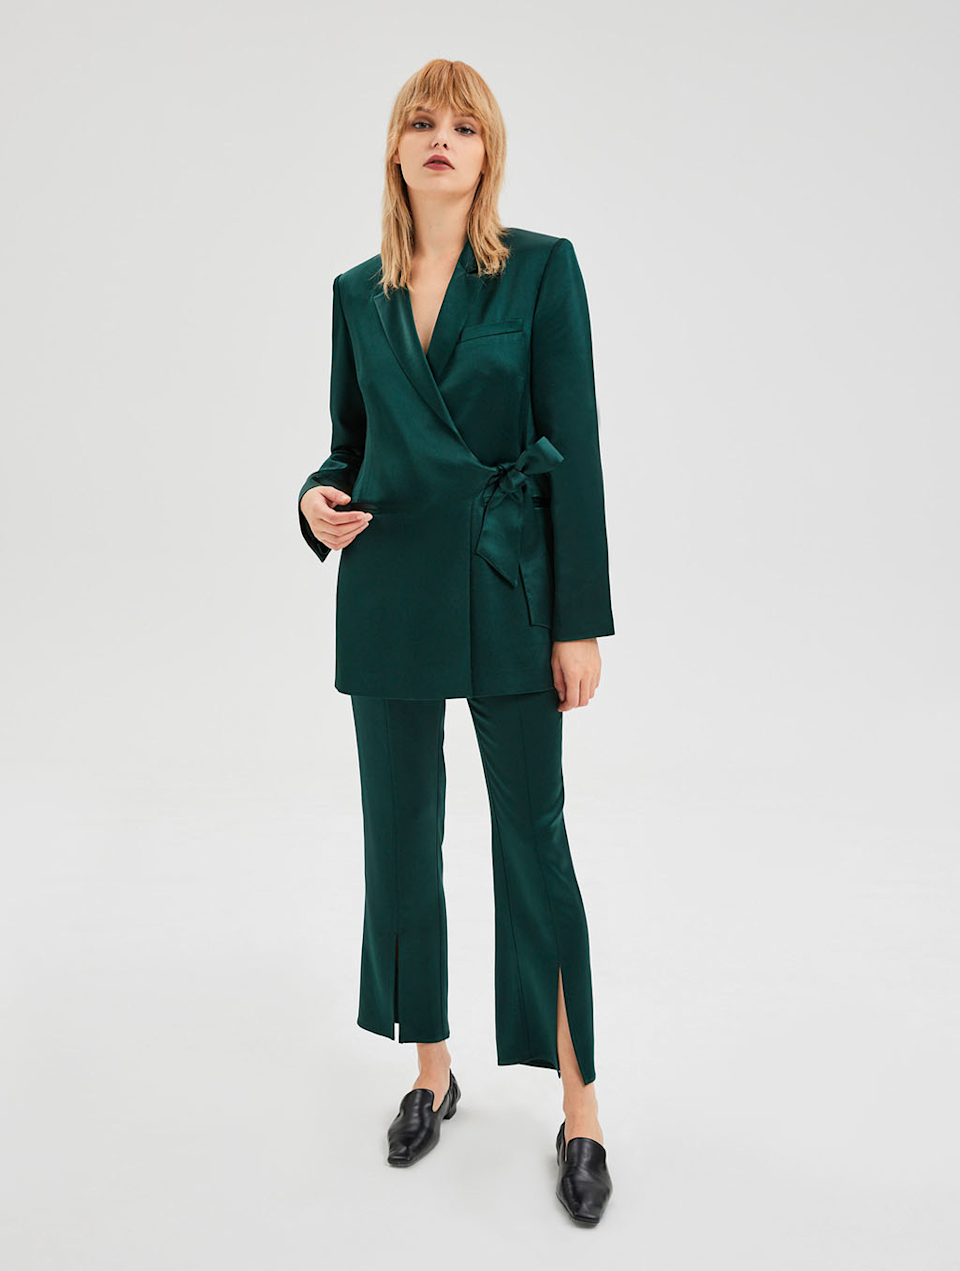 """<h2>Lattelier Tie-Waist Blazer & Front Slit Trousers Matching Suit</h2><br>""""When it comes to dressing up, I prefer pantsuits over dresses, hands down. One of my childhood pals is getting married this fall and I plan on wearing this two-piece suited number to his ceremony. Plus, a suit is such a wardrobe expander because it's like scoring a twofer deal when you wear them as separates: the blazer can be worn anytime as a lightweight jacket and the trousers can sub in for any pair of jeans if I'm trying to look fancier."""" <em>– Jinnie Lee, Freelance Fashion Writer</em><br><br><em>Shop <a href=""""https://lattelierstore.com/"""" rel=""""nofollow noopener"""" target=""""_blank"""" data-ylk=""""slk:Lattelier"""" class=""""link rapid-noclick-resp"""">Lattelier</a></em><br><br><strong>Lattelier</strong> Tie-Waist Blazer, $, available at <a href=""""https://go.skimresources.com/?id=30283X879131&url=https%3A%2F%2Flattelierstore.com%2Fproduct%2Ftie-waist-blazer%2F"""" rel=""""nofollow noopener"""" target=""""_blank"""" data-ylk=""""slk:Lattelier"""" class=""""link rapid-noclick-resp"""">Lattelier</a><br><br><strong>Lattelier</strong> Front Slit Trousers, $, available at <a href=""""https://go.skimresources.com/?id=30283X879131&url=https%3A%2F%2Flattelierstore.com%2Fproduct%2Ffront-slit-trousers%2F"""" rel=""""nofollow noopener"""" target=""""_blank"""" data-ylk=""""slk:Lattelier"""" class=""""link rapid-noclick-resp"""">Lattelier</a>"""